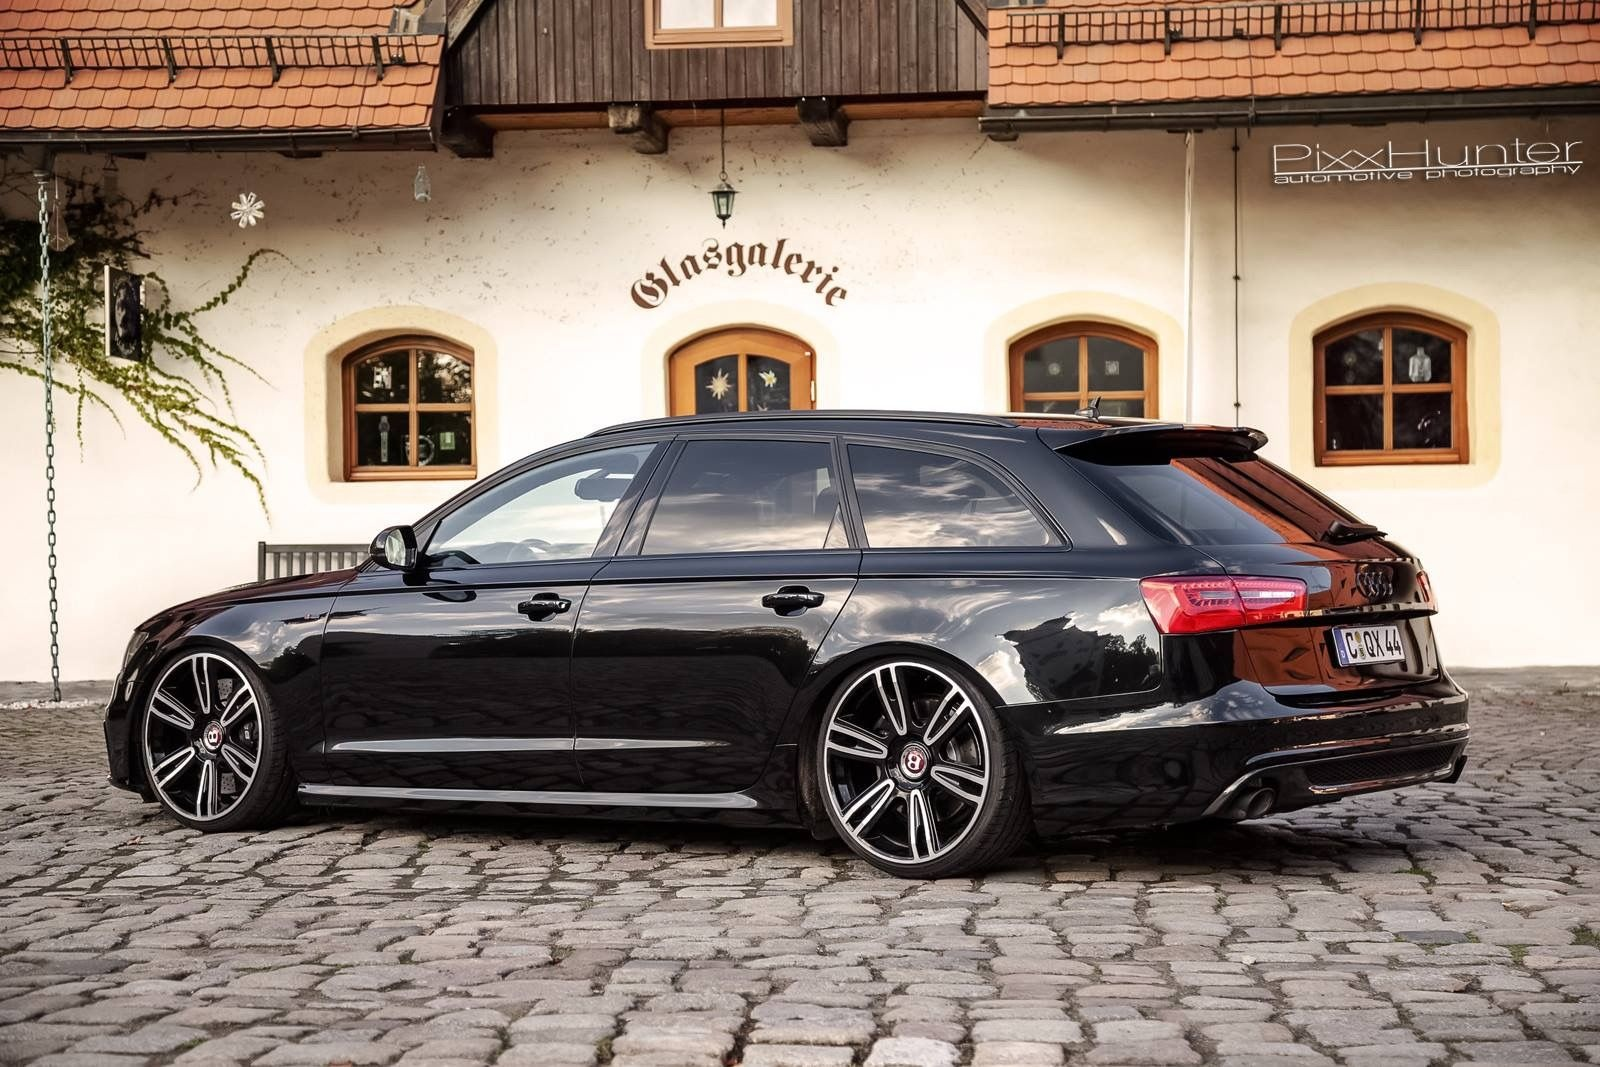 Audi Rs6 Modified Fresh Dropped Rs6 Wagon O Philia Cars Audi Rs6 Audi-1303 Of Inspirational Audi Rs6 Modified